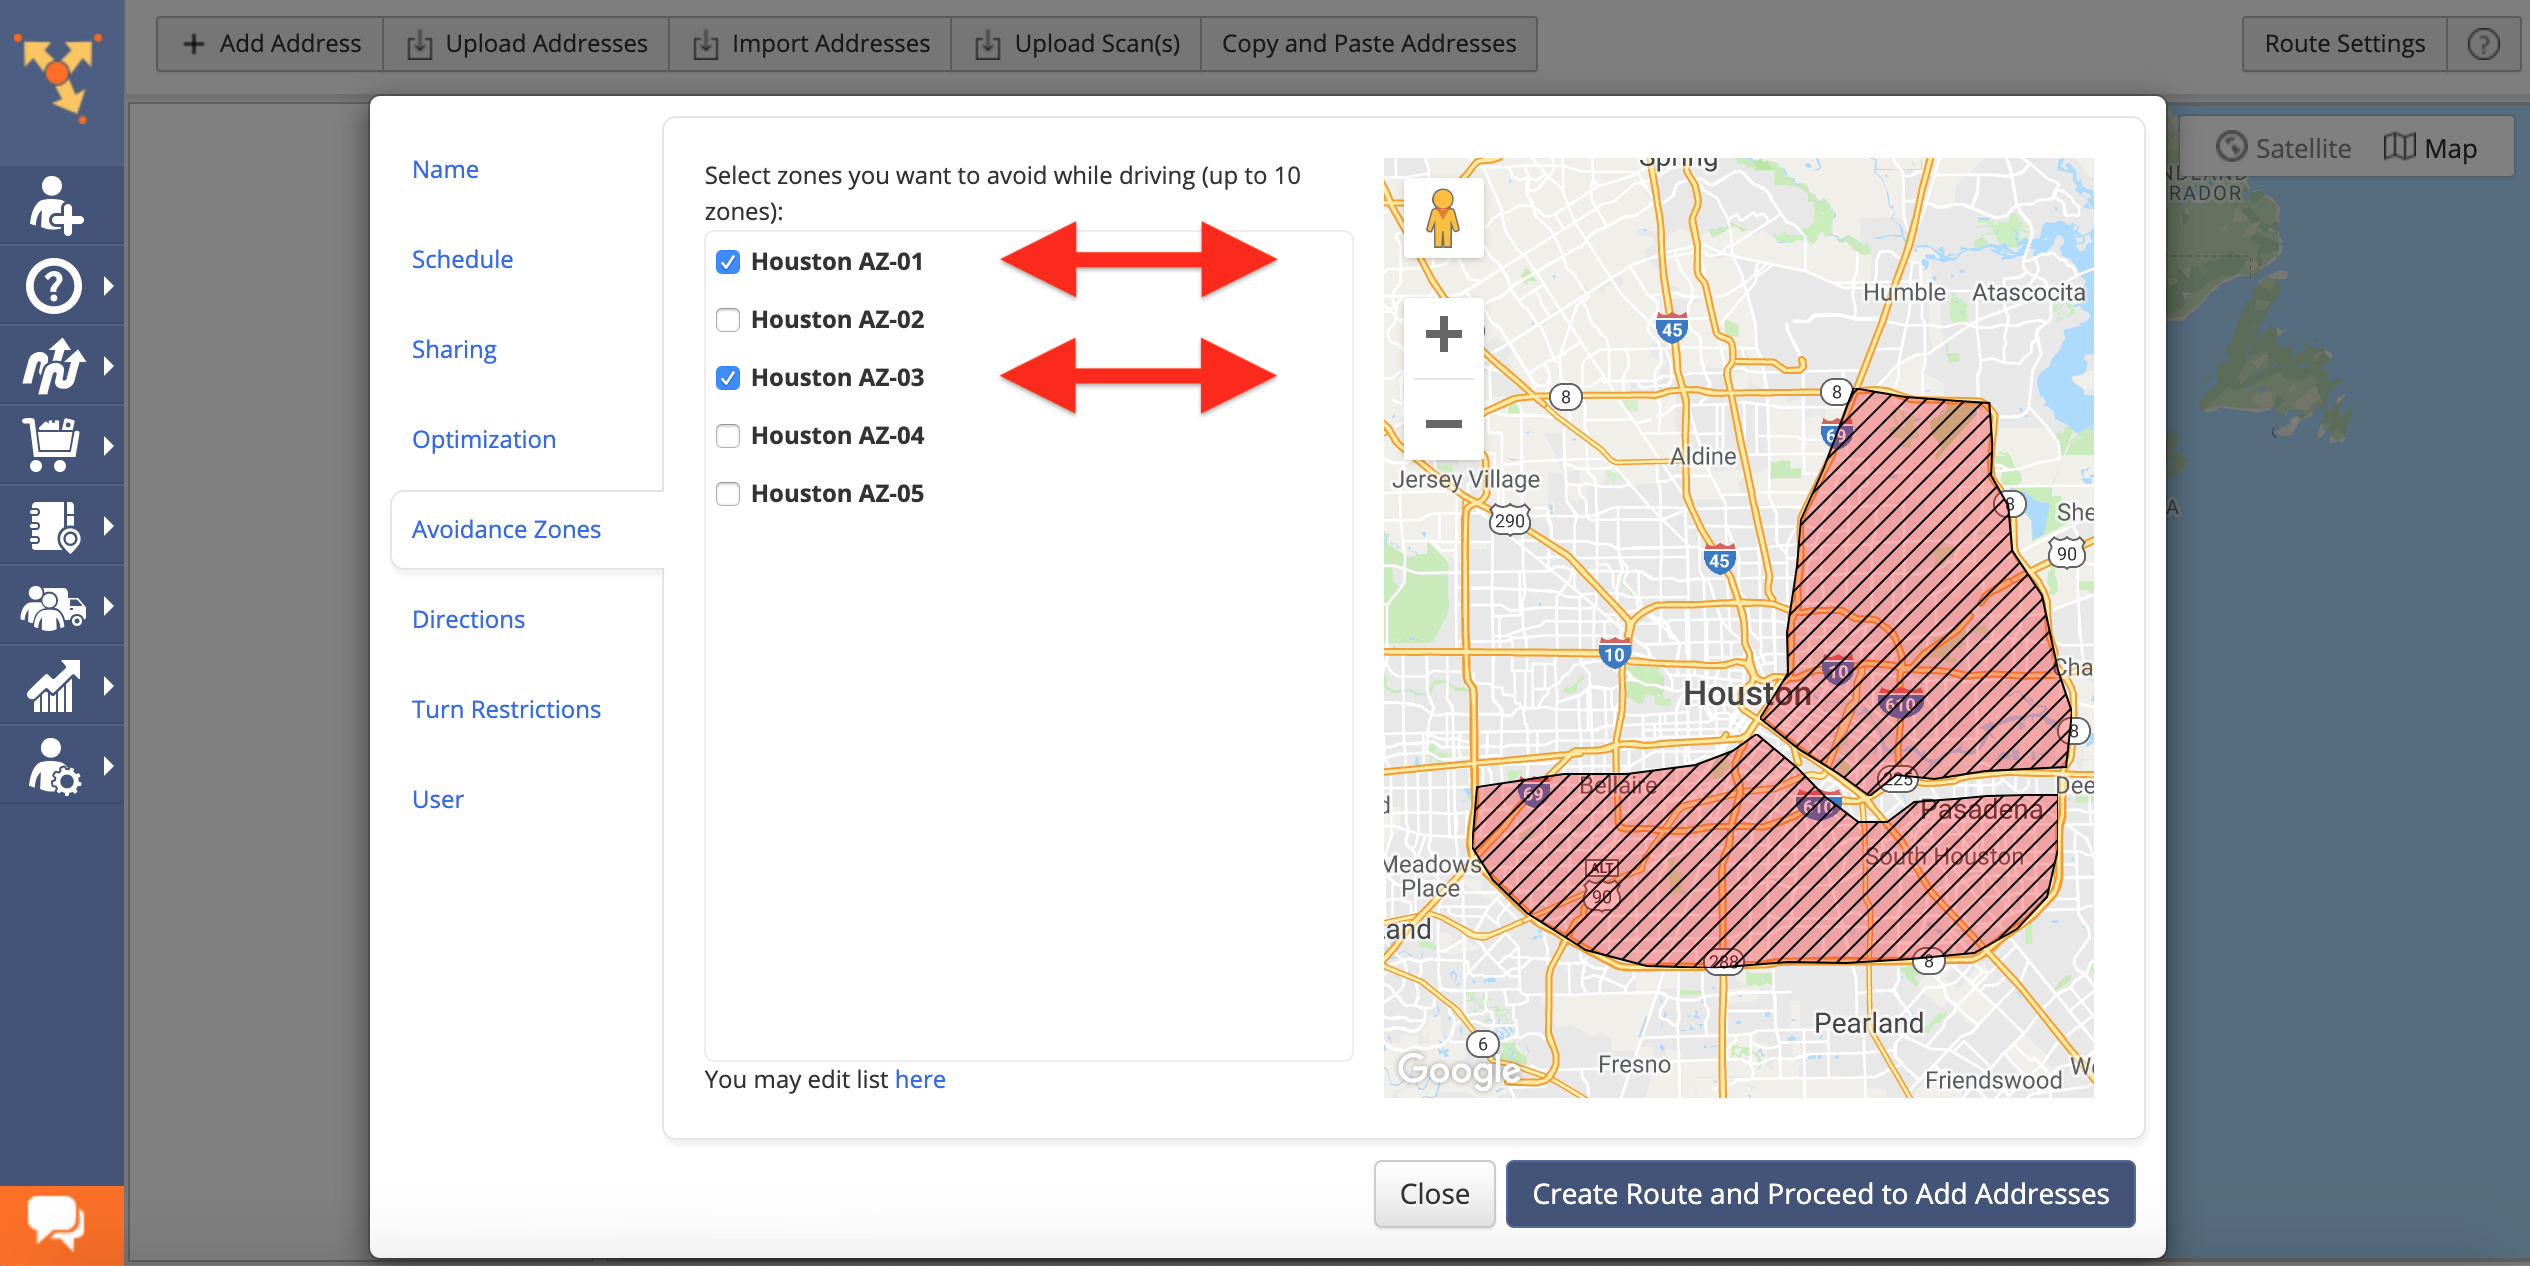 Showing how to apply one or multiple Avoidance Zones to a route in Route4Me route planner app